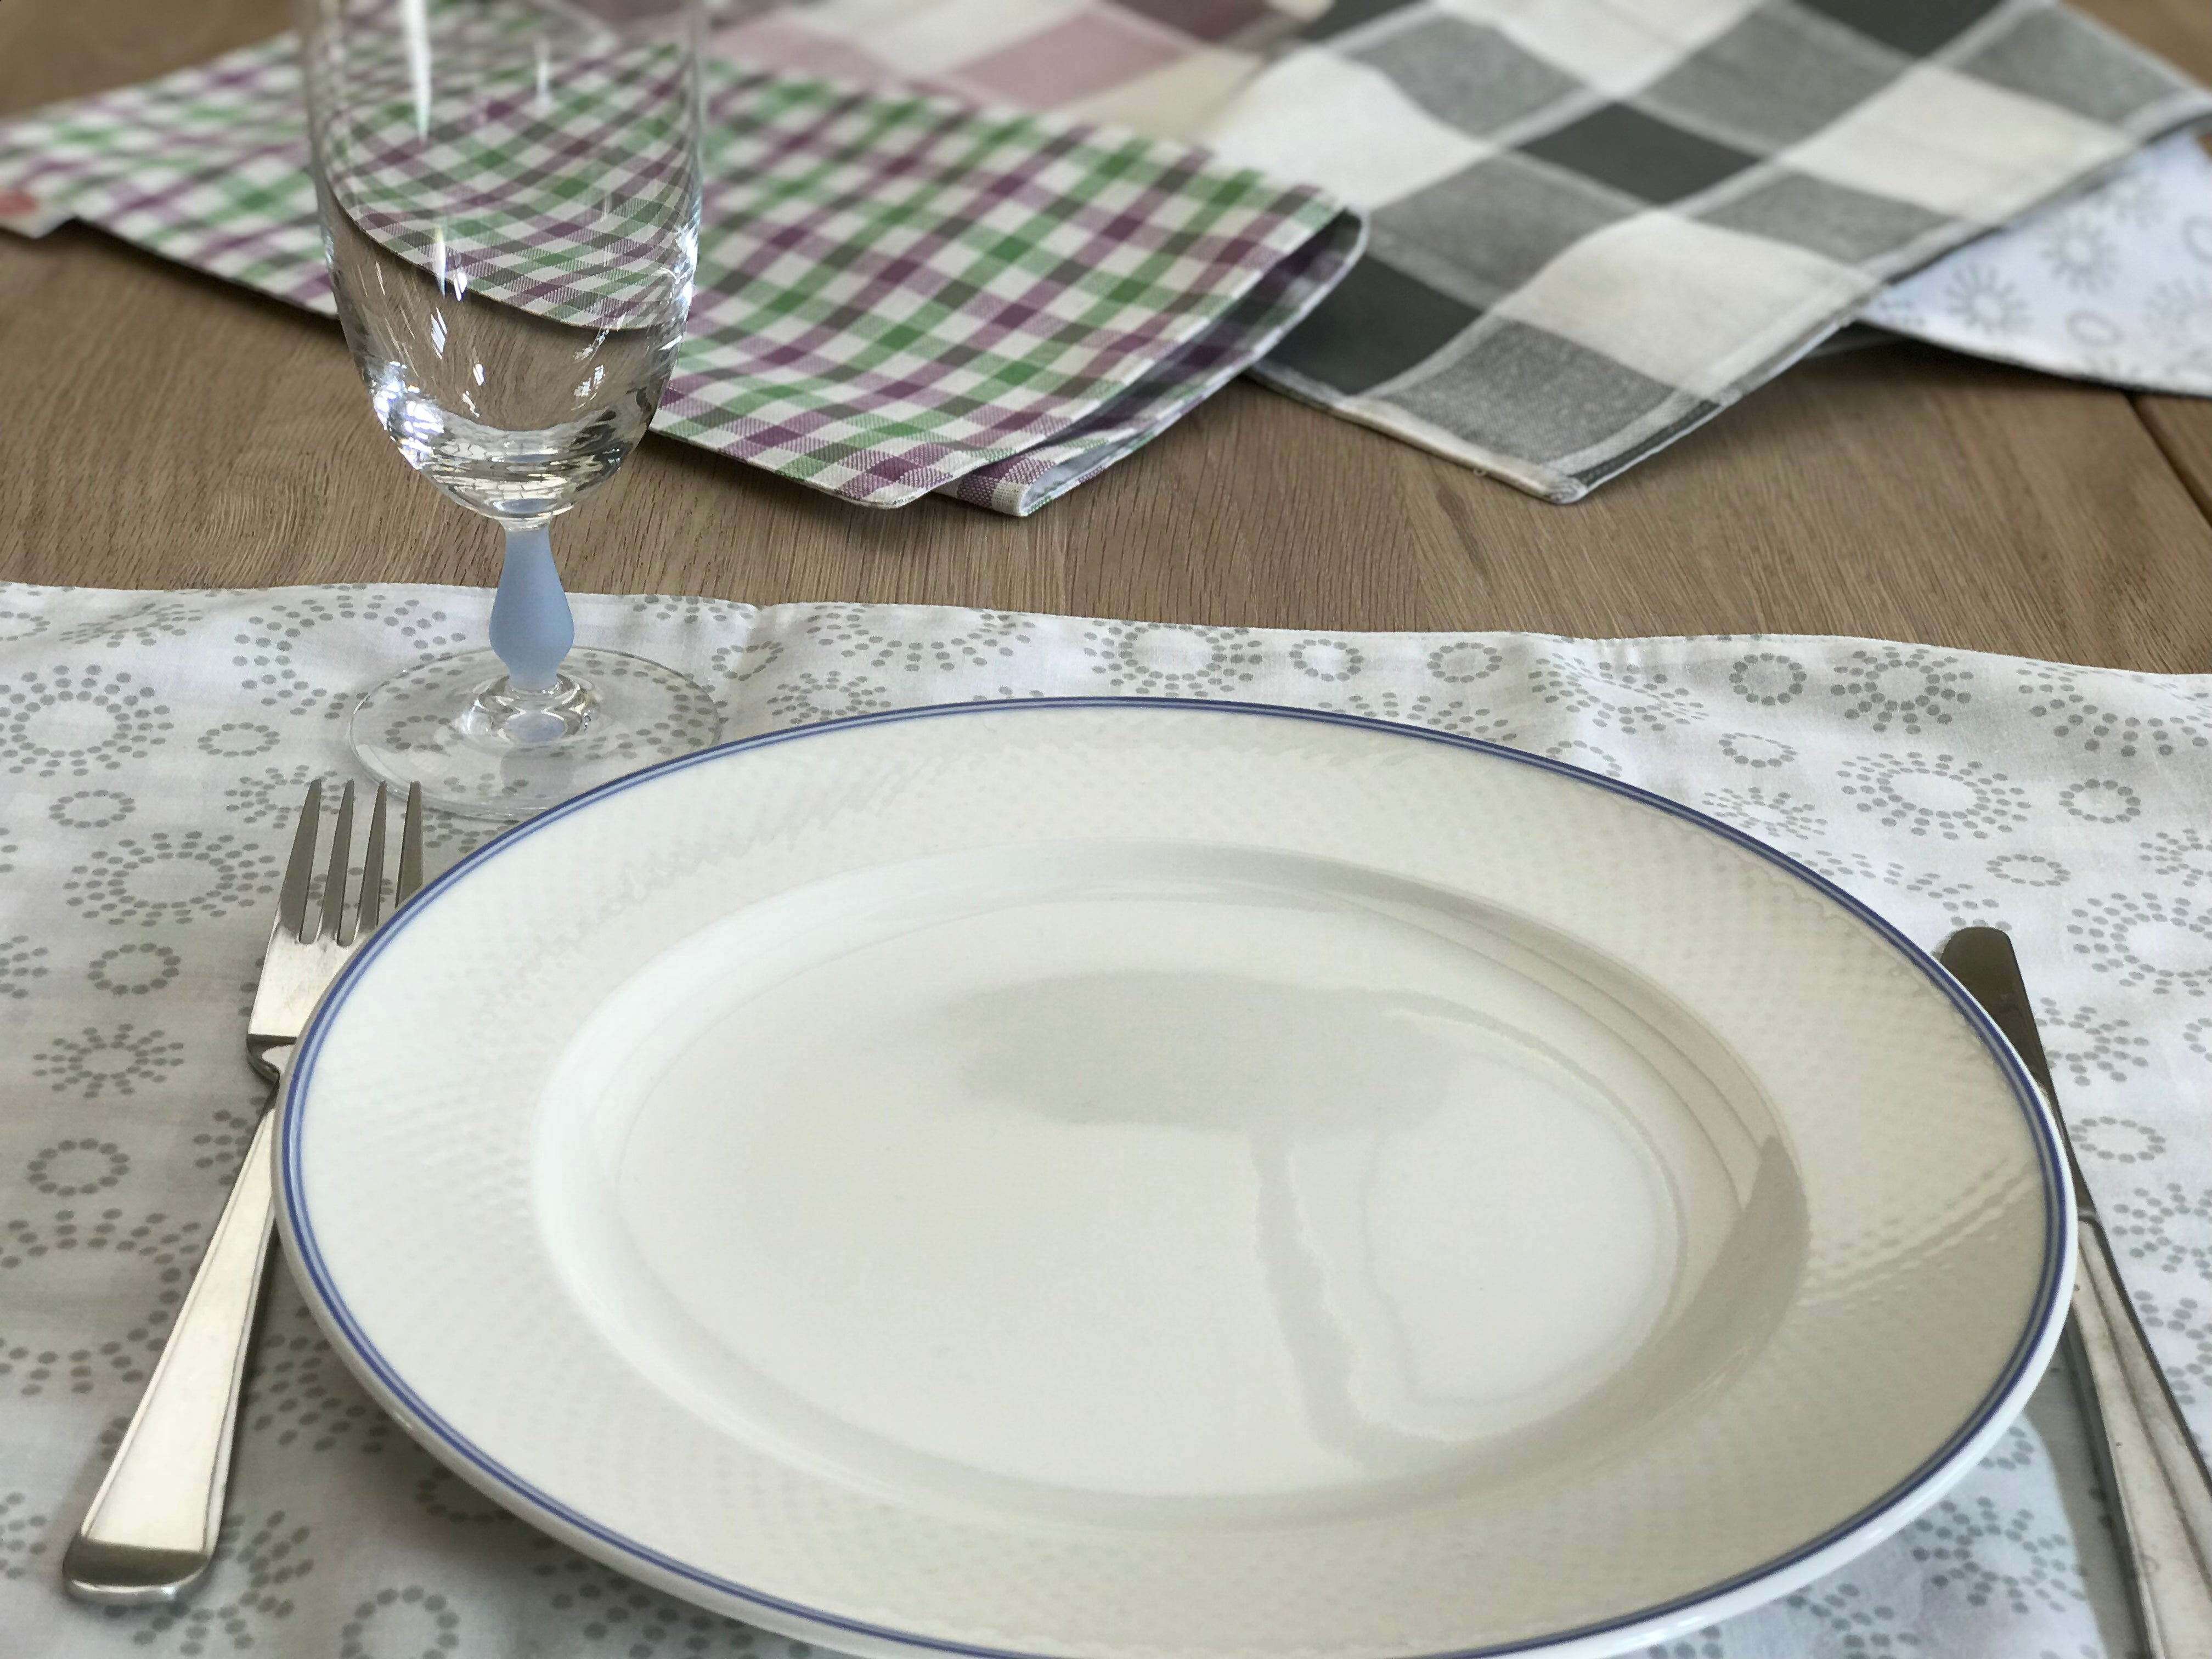 Chelsea Placemats - Alessandra Handmade Creations